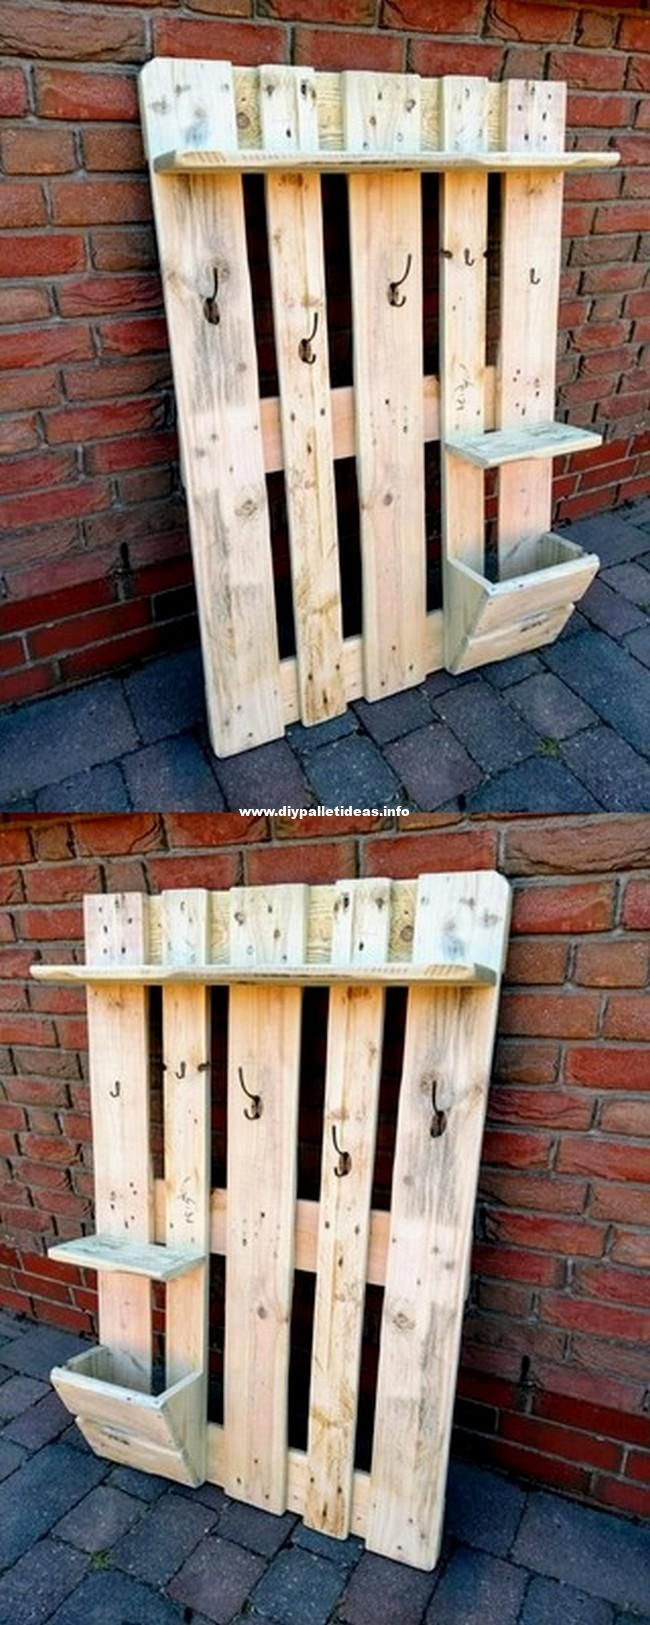 50+Modern Ideas of Pallet Wood Creations And Projects ...